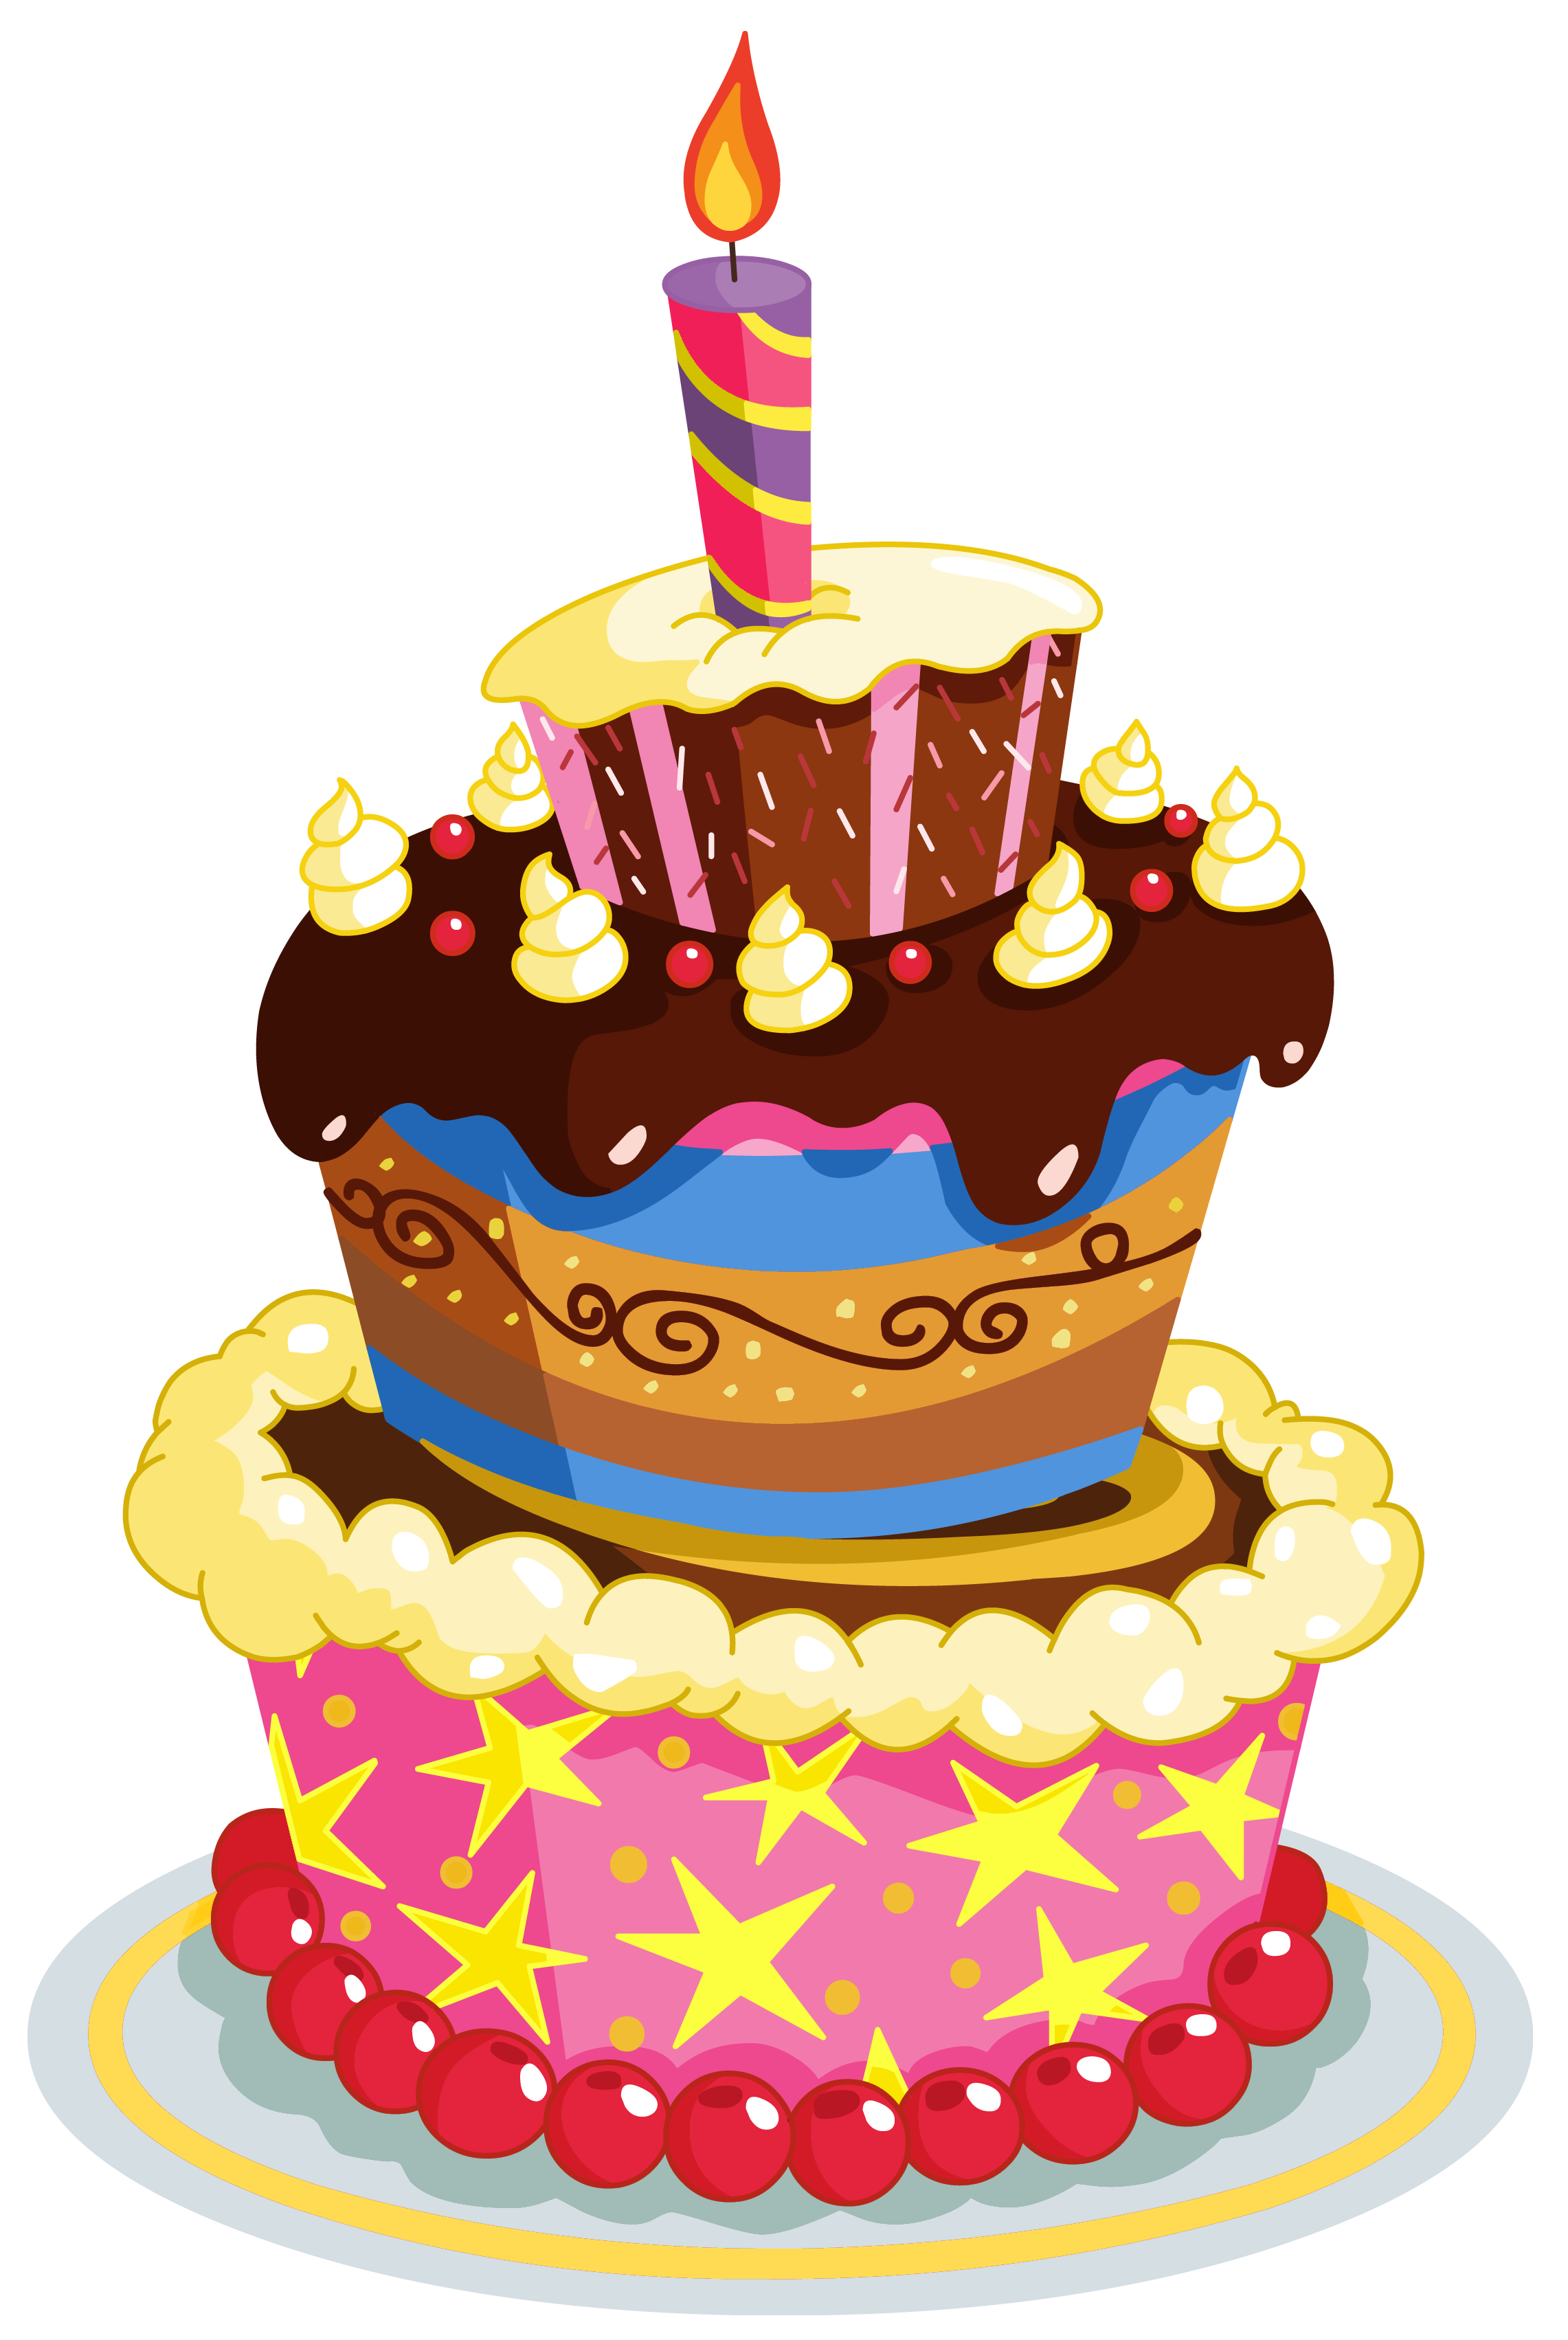 Set these cute birthday cake clipart as desktop profile in your PC.